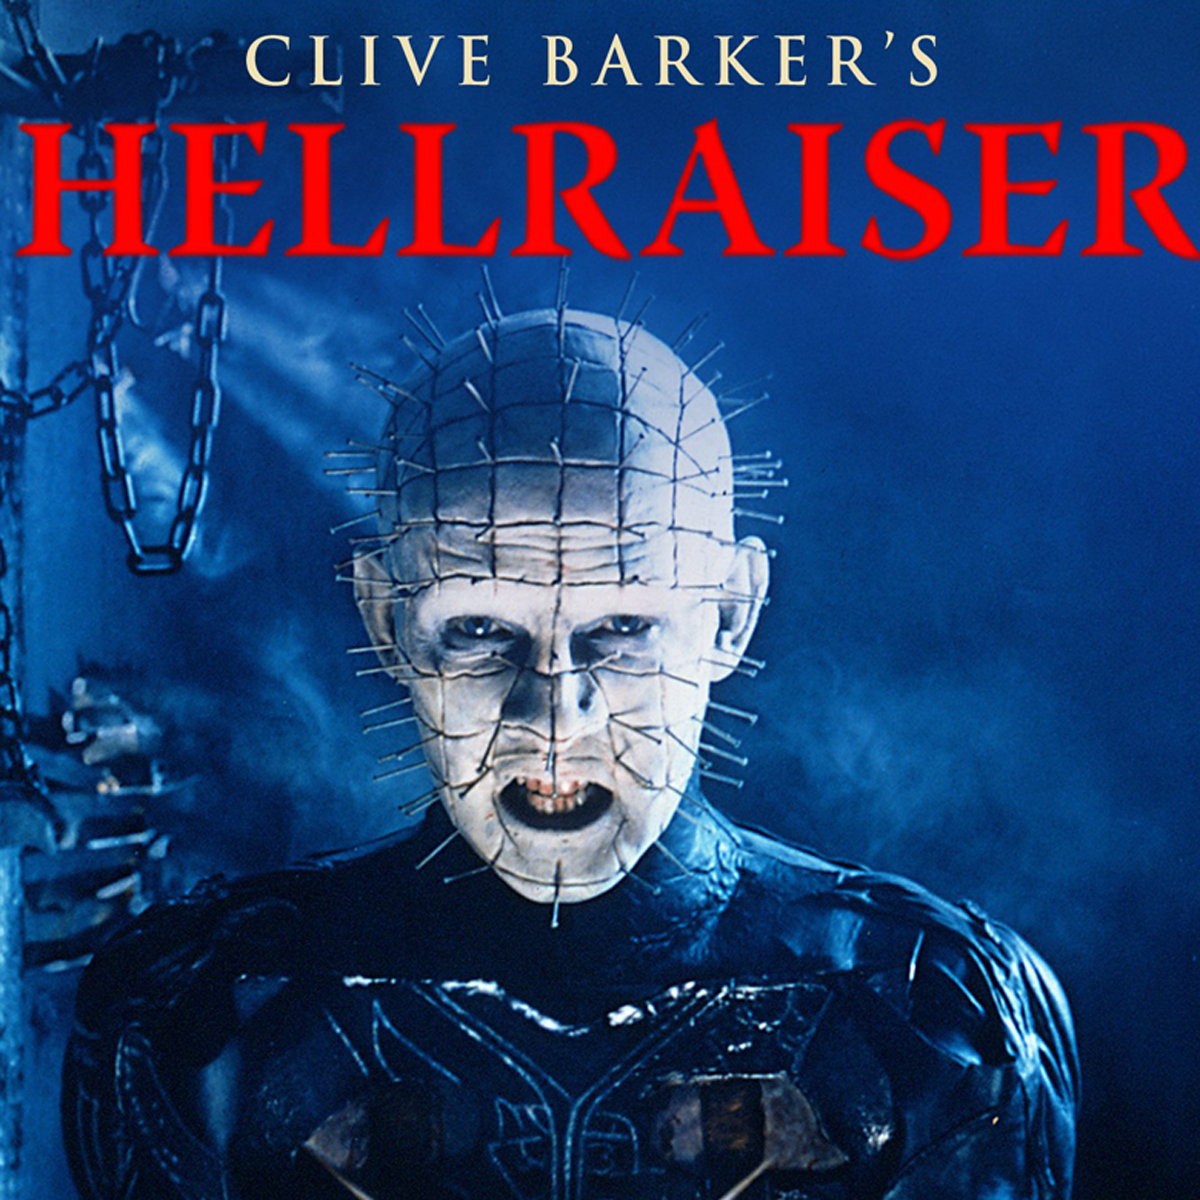 ISTYA Hellraiser 1987 movie review